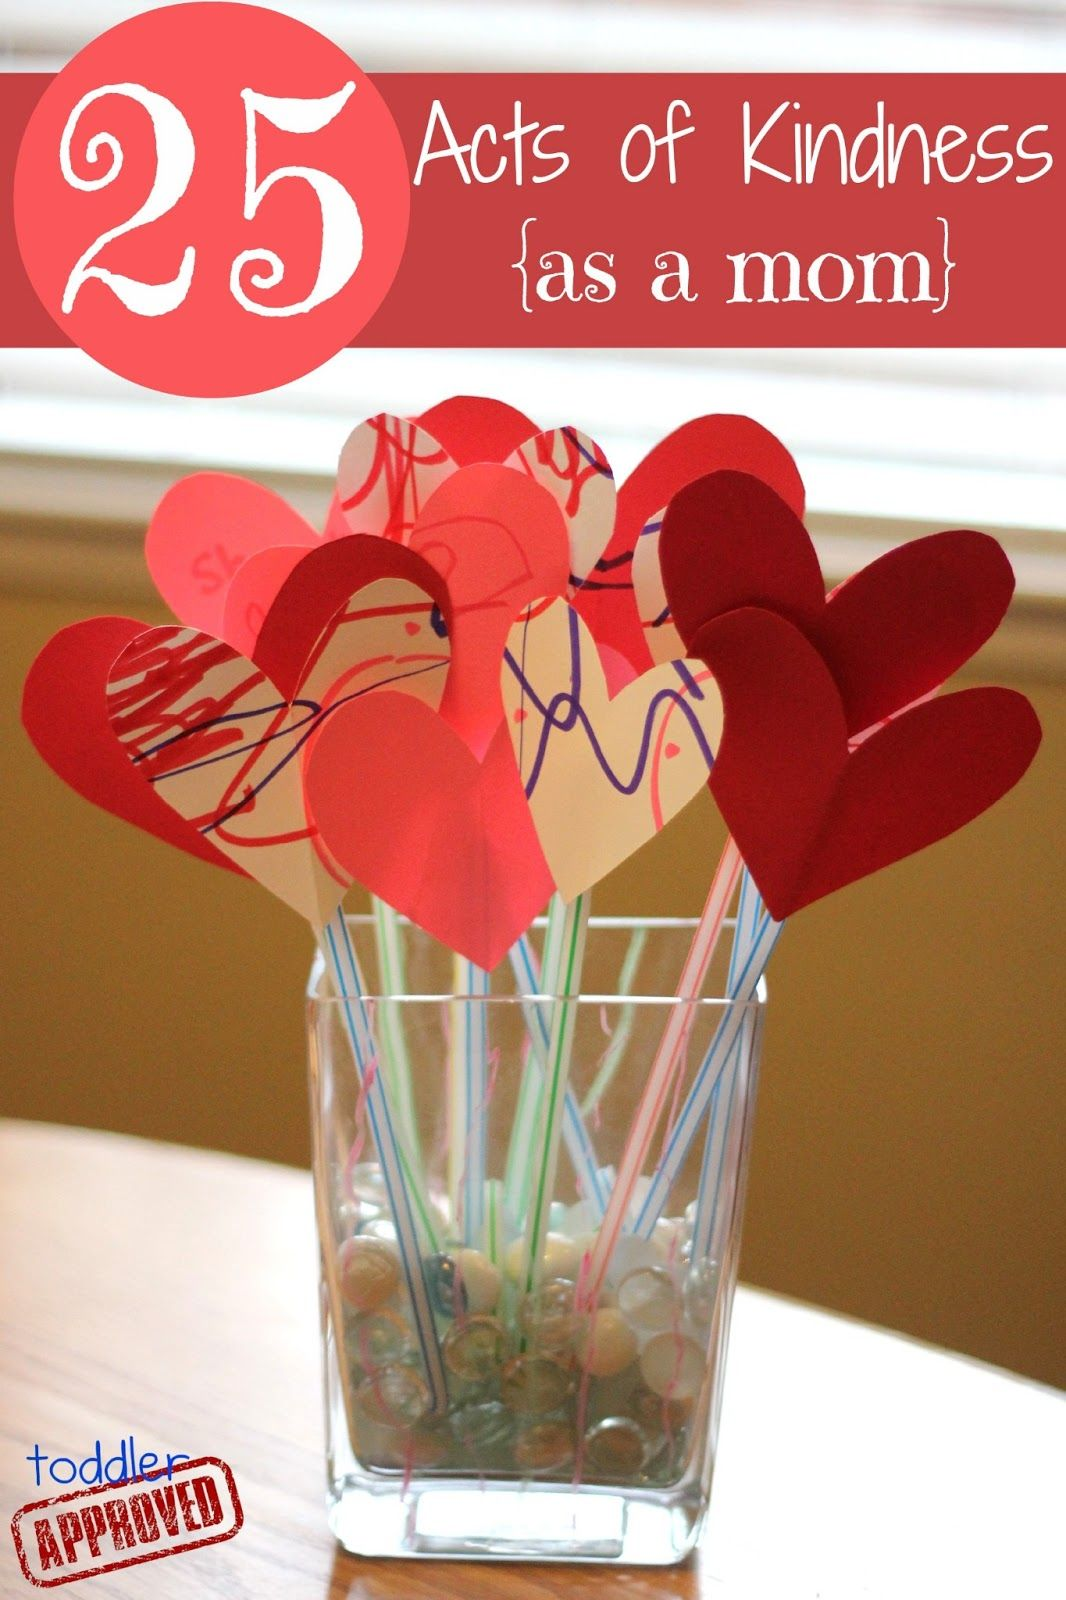 25 Acts Of Kindness As A Mom